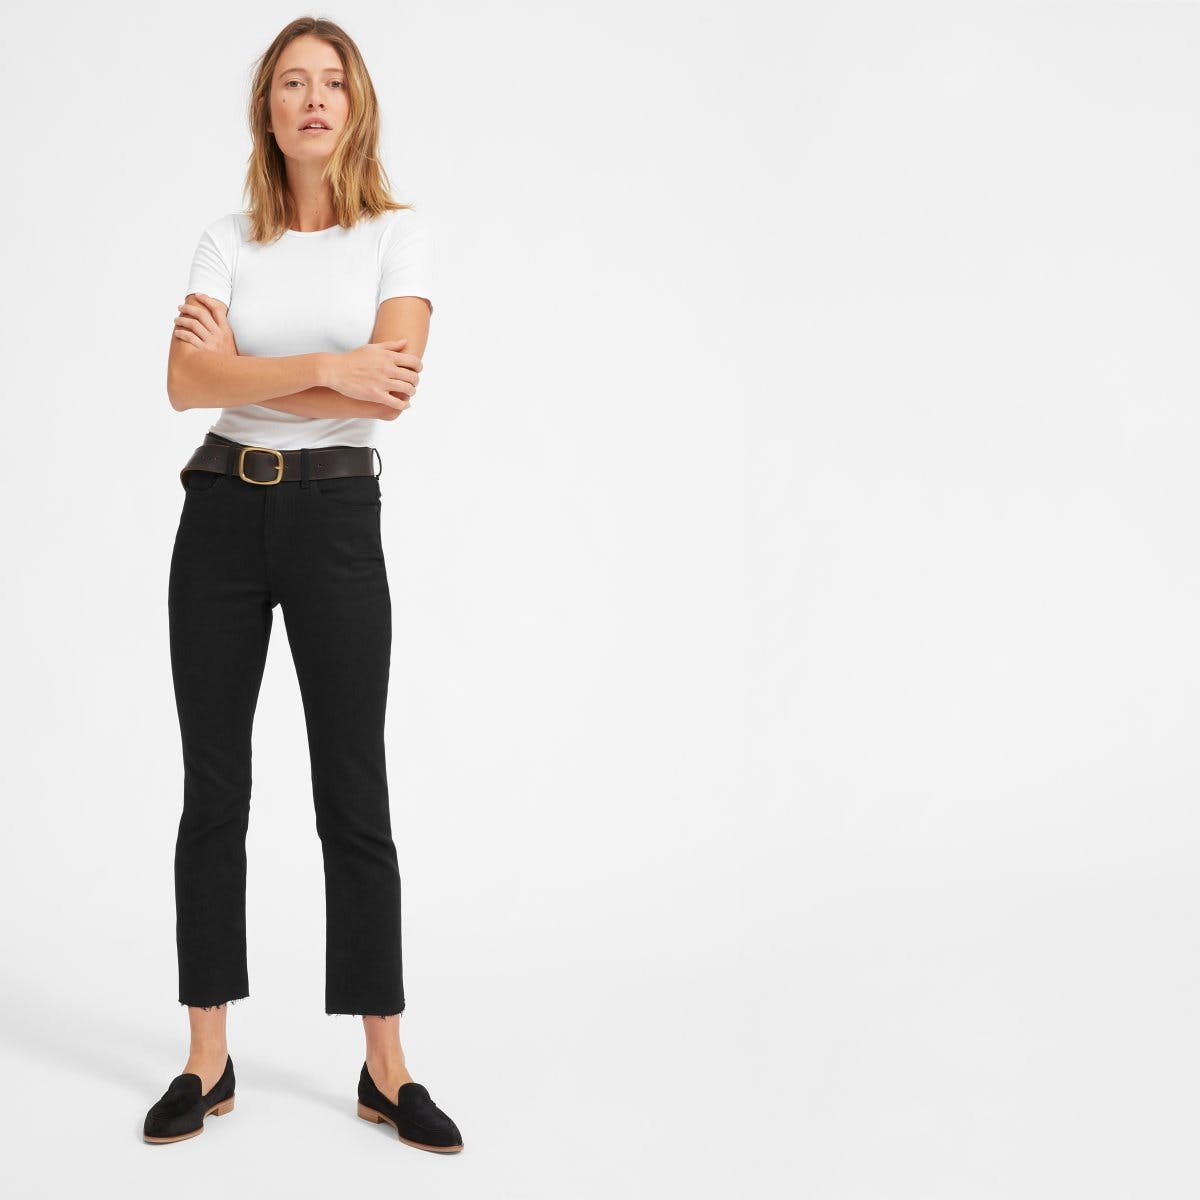 everlane, everlane jeans, everlane denim, japanese denim, kick flare jeans, cropped jeans, frayed jeans, raw hem jeans, black jeans, denimblog, denim blog